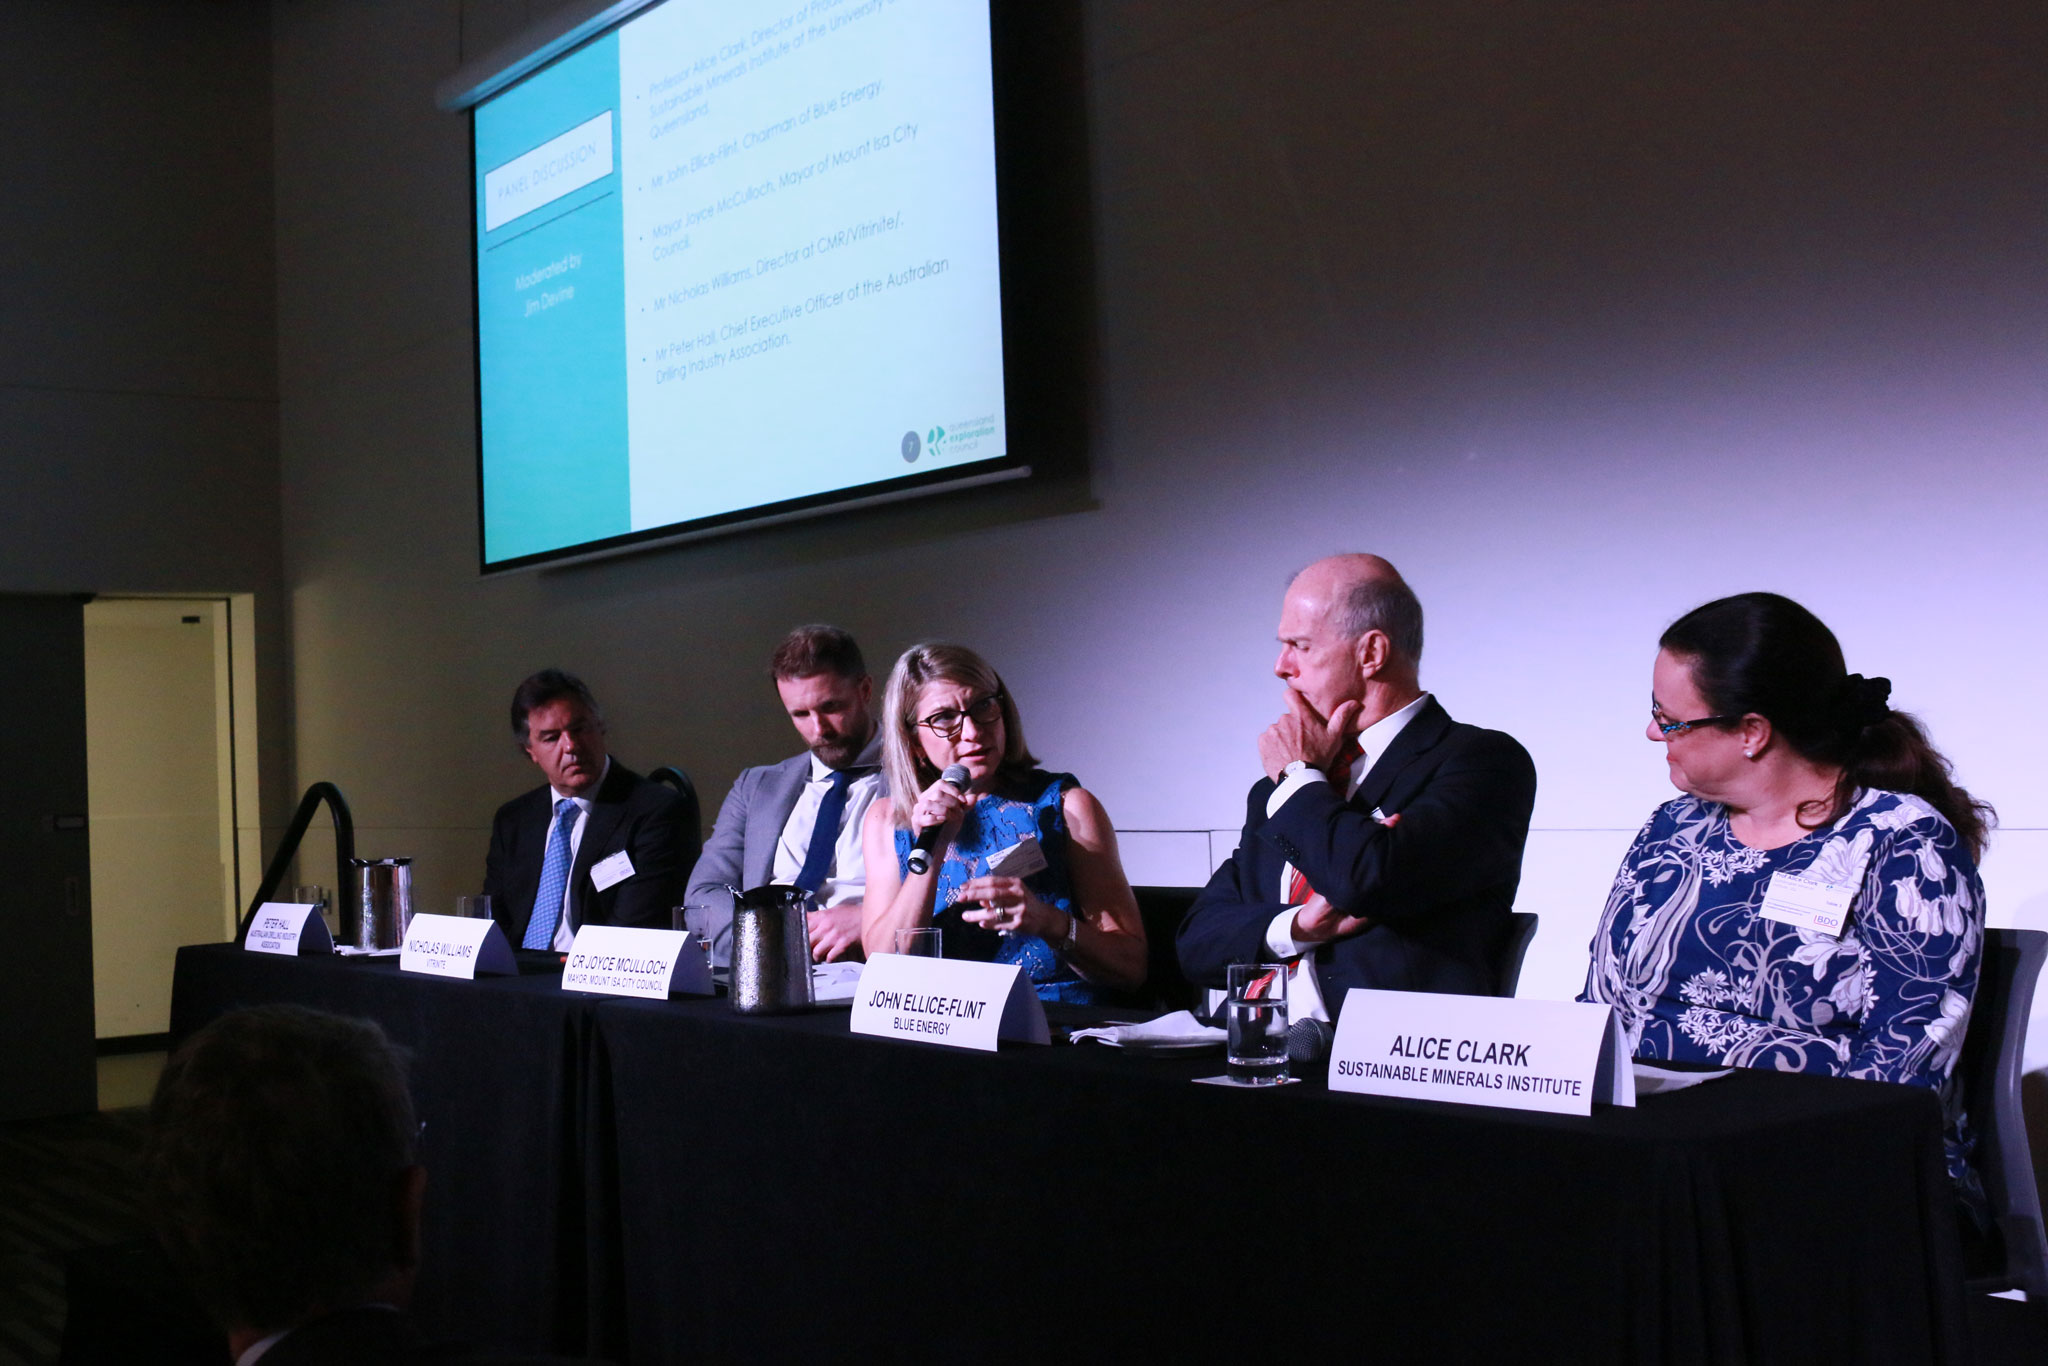 Panel discussion at resources event conference Queensland Brisbane resources mining exploration